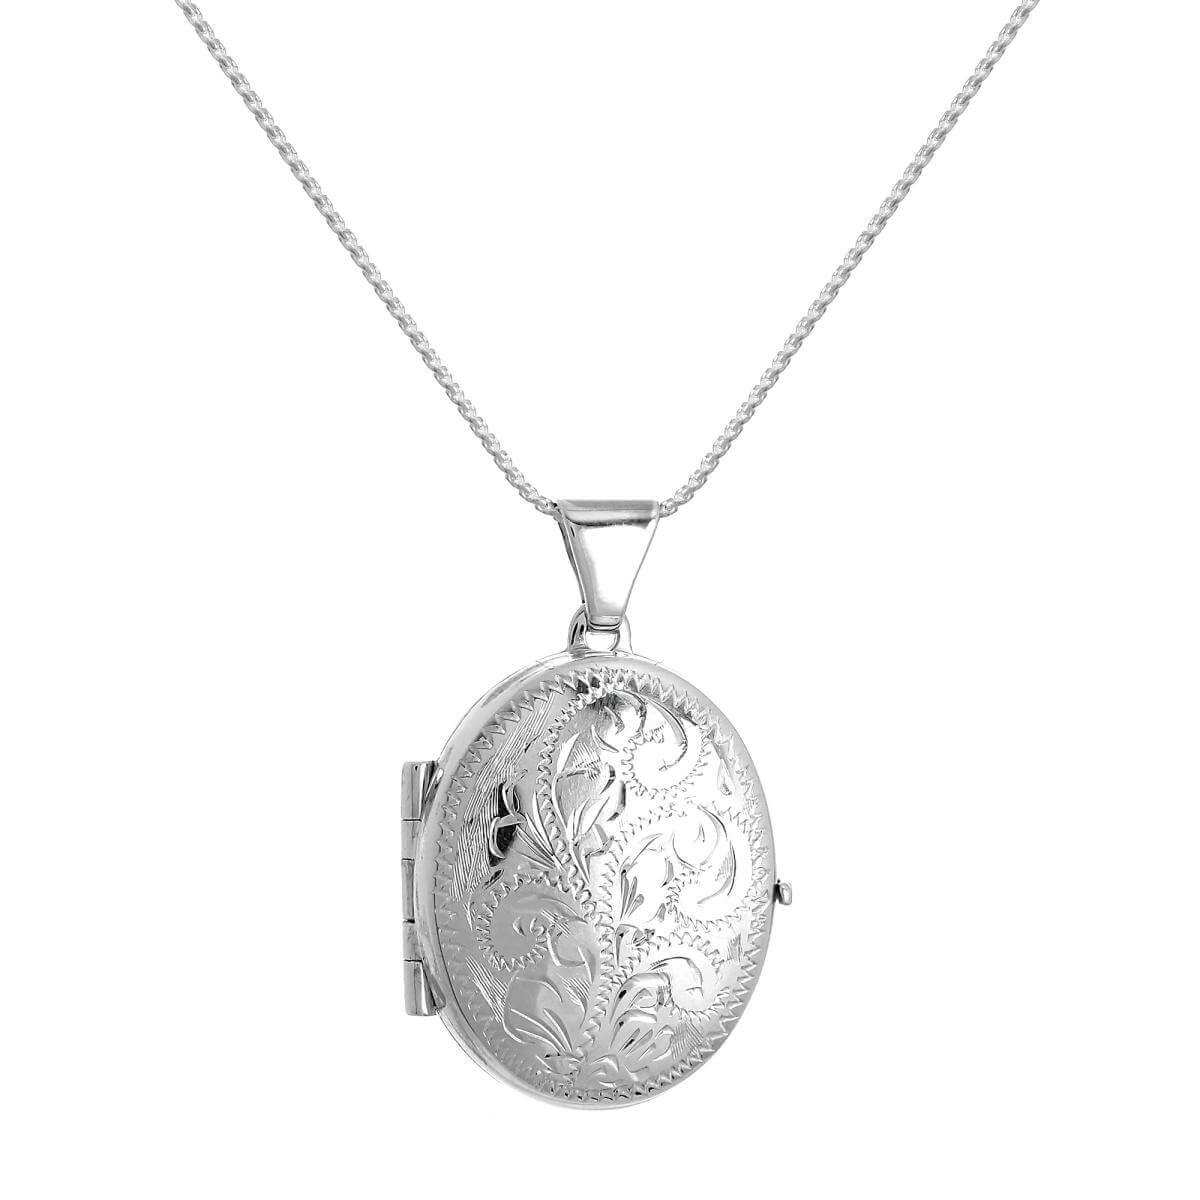 Sterling Silver Engraved Oval 4 Photo Family Locket on Chain